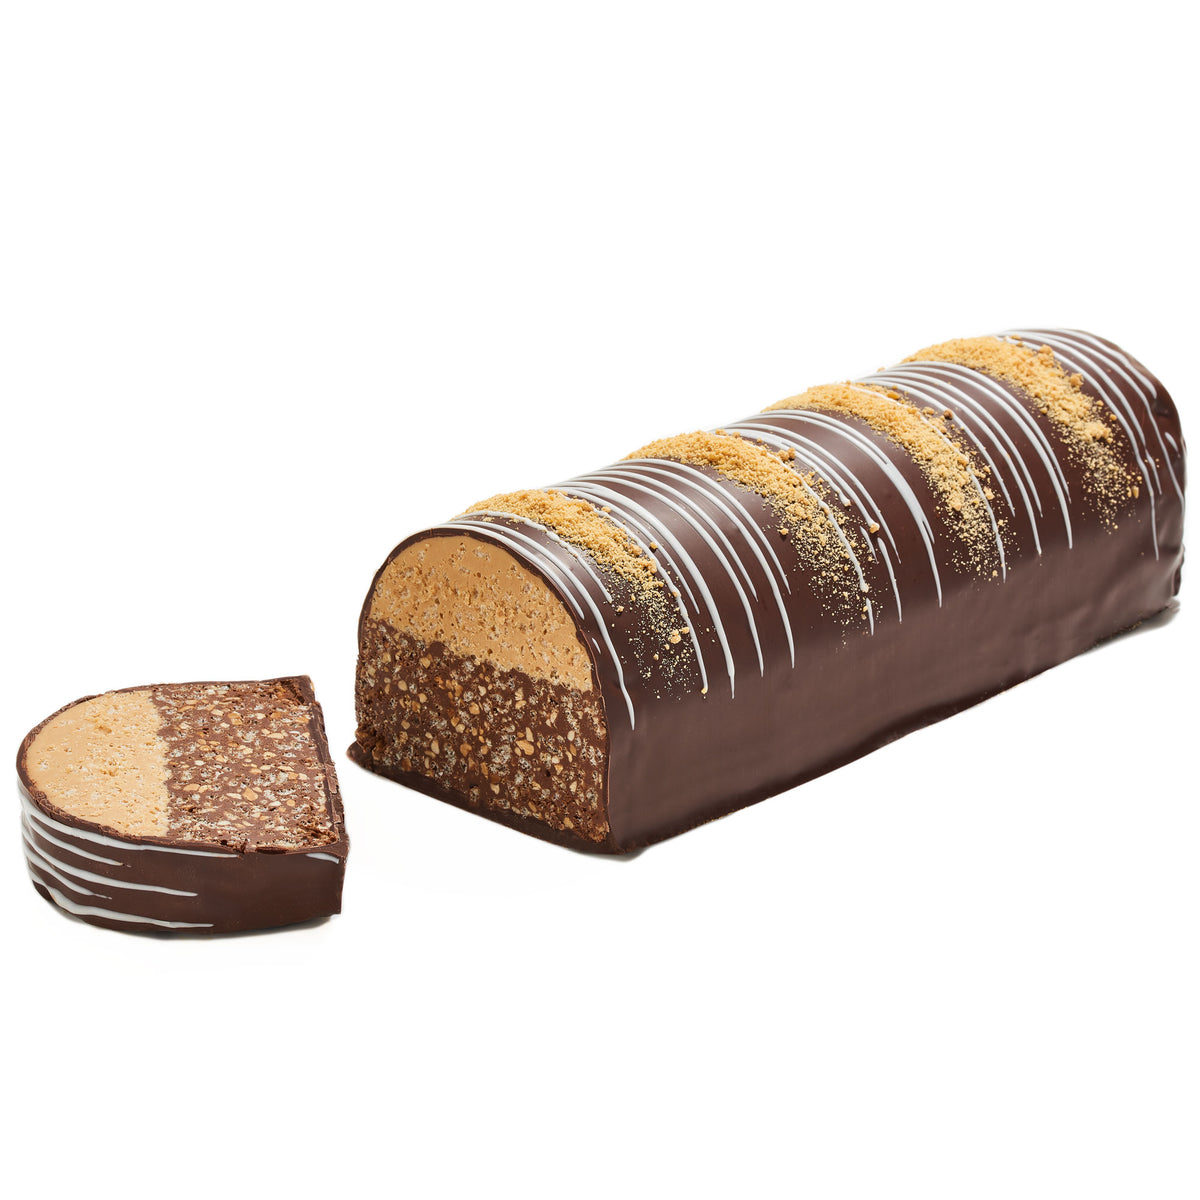 Fancy Chocolate Truffle Halva Log, Kosher